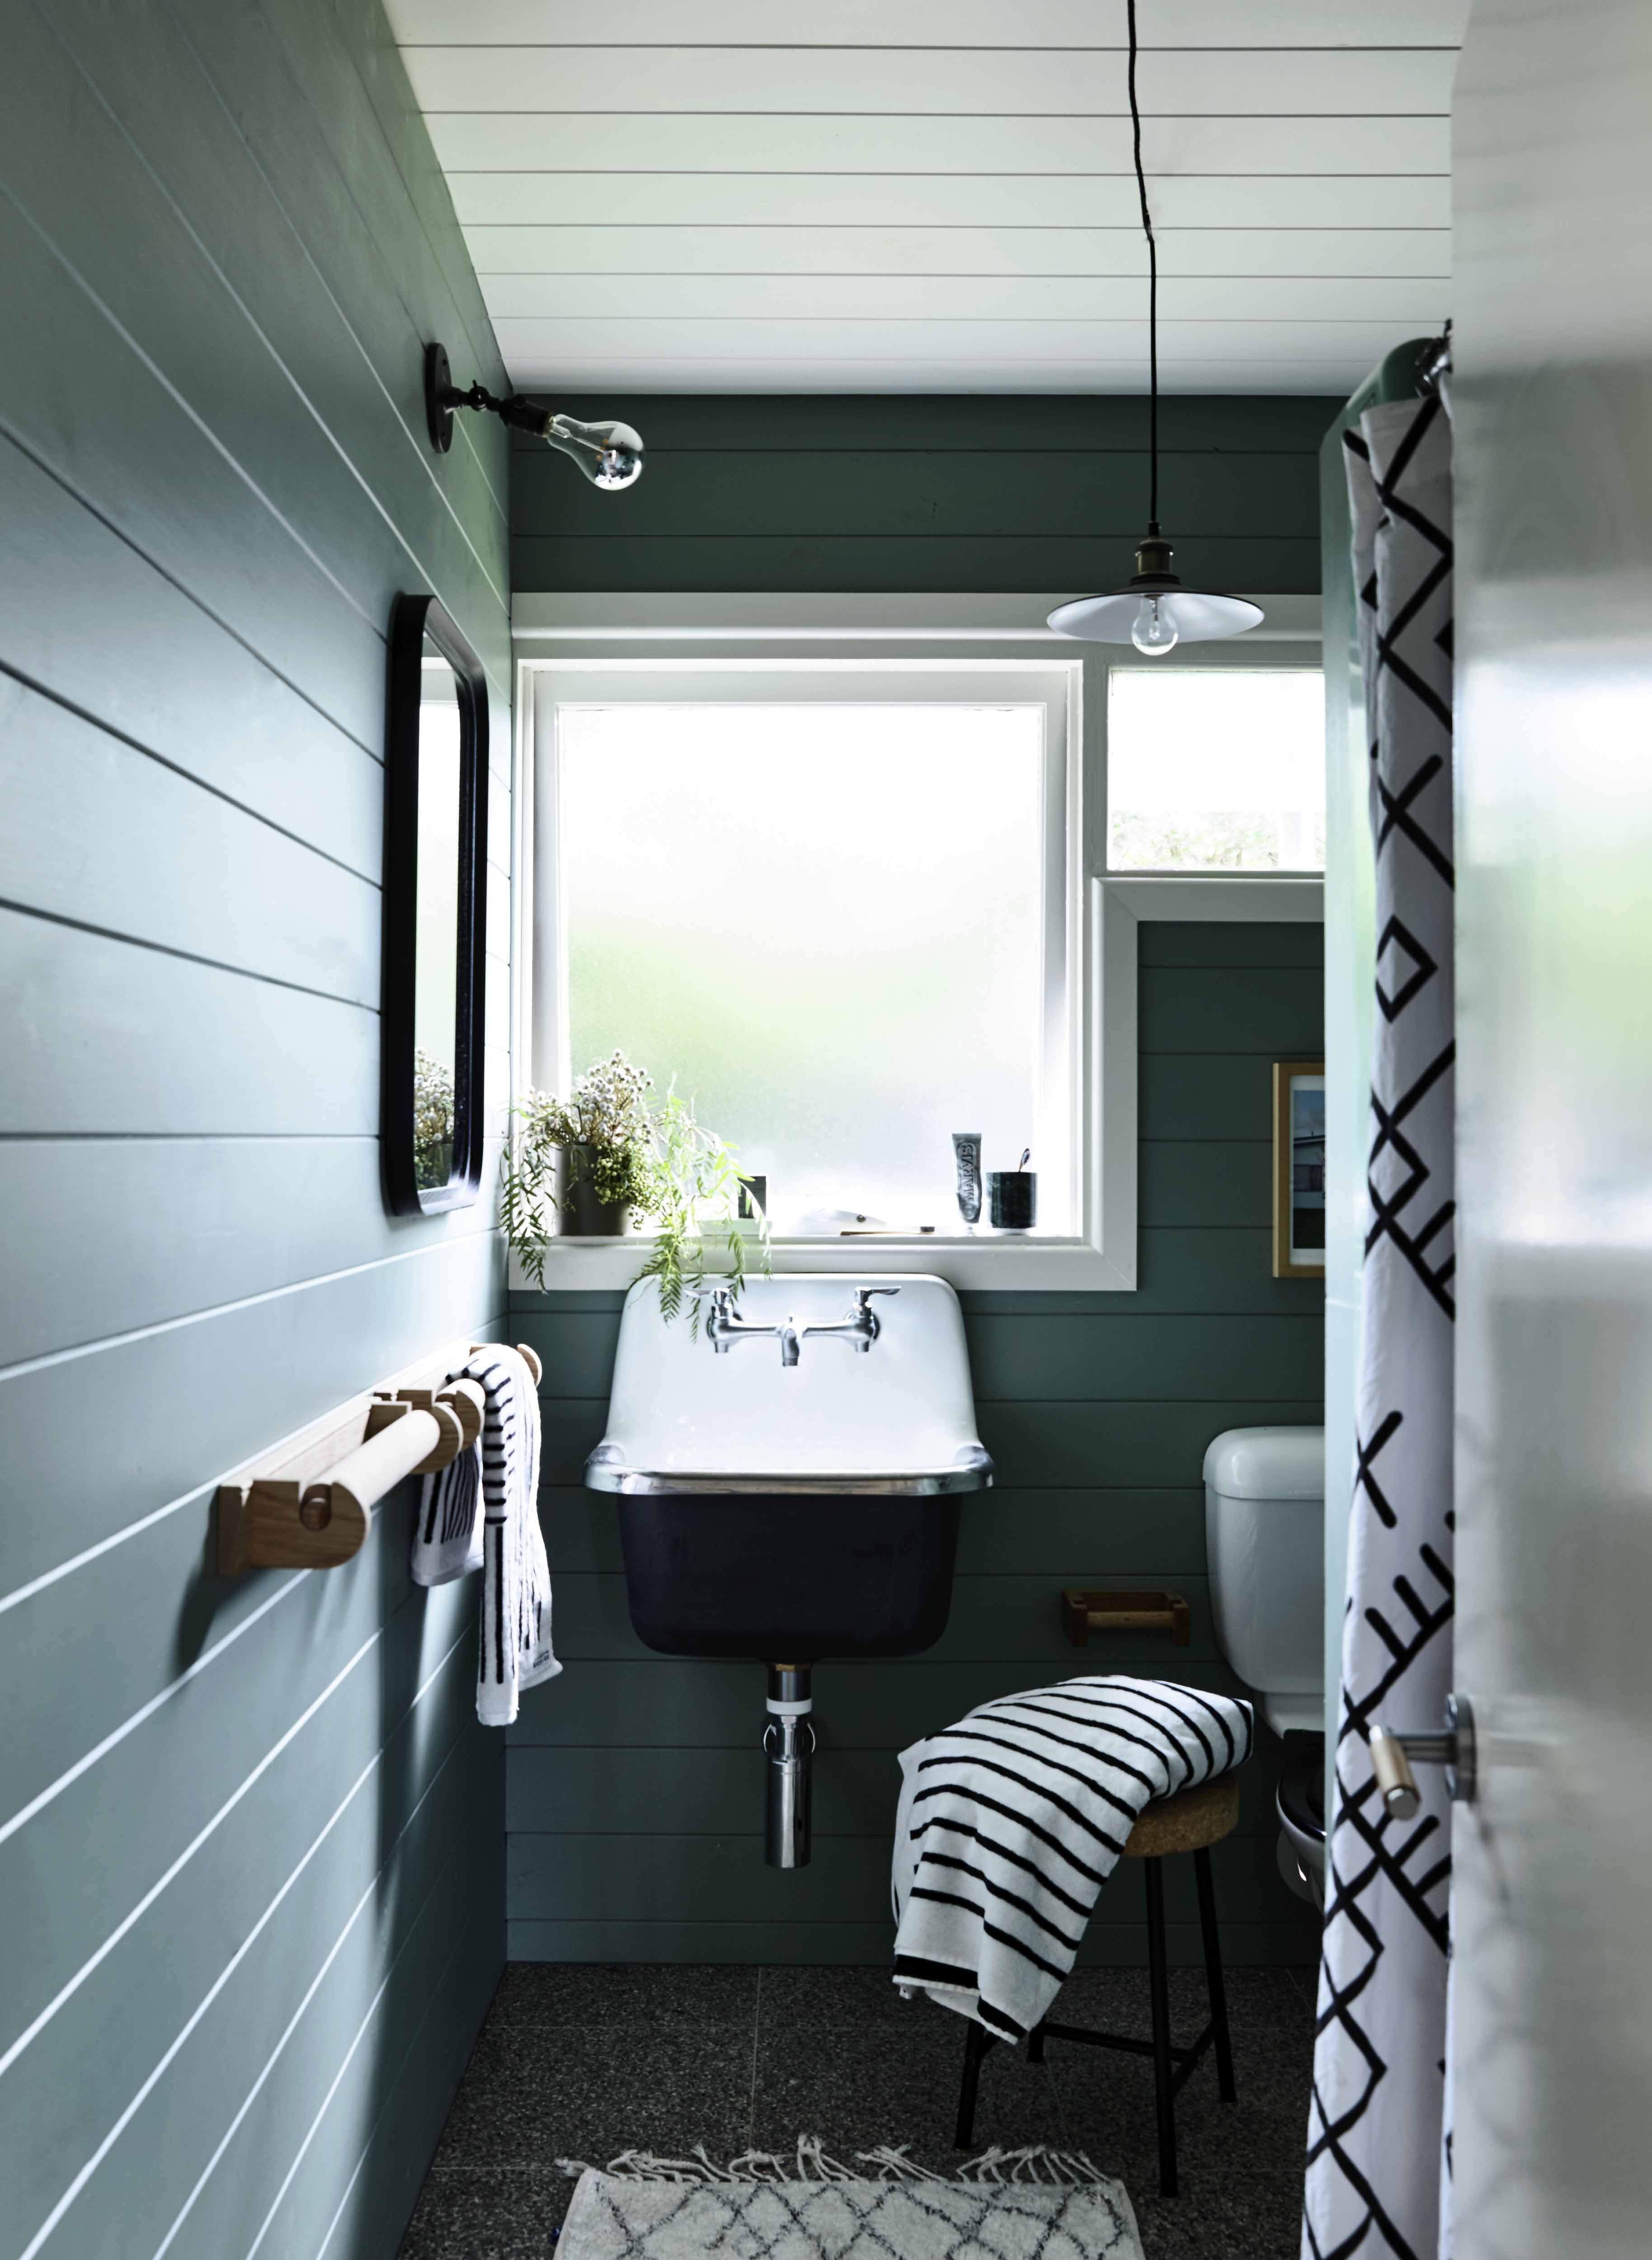 Bathroom Paint Ideas - Example bathroom